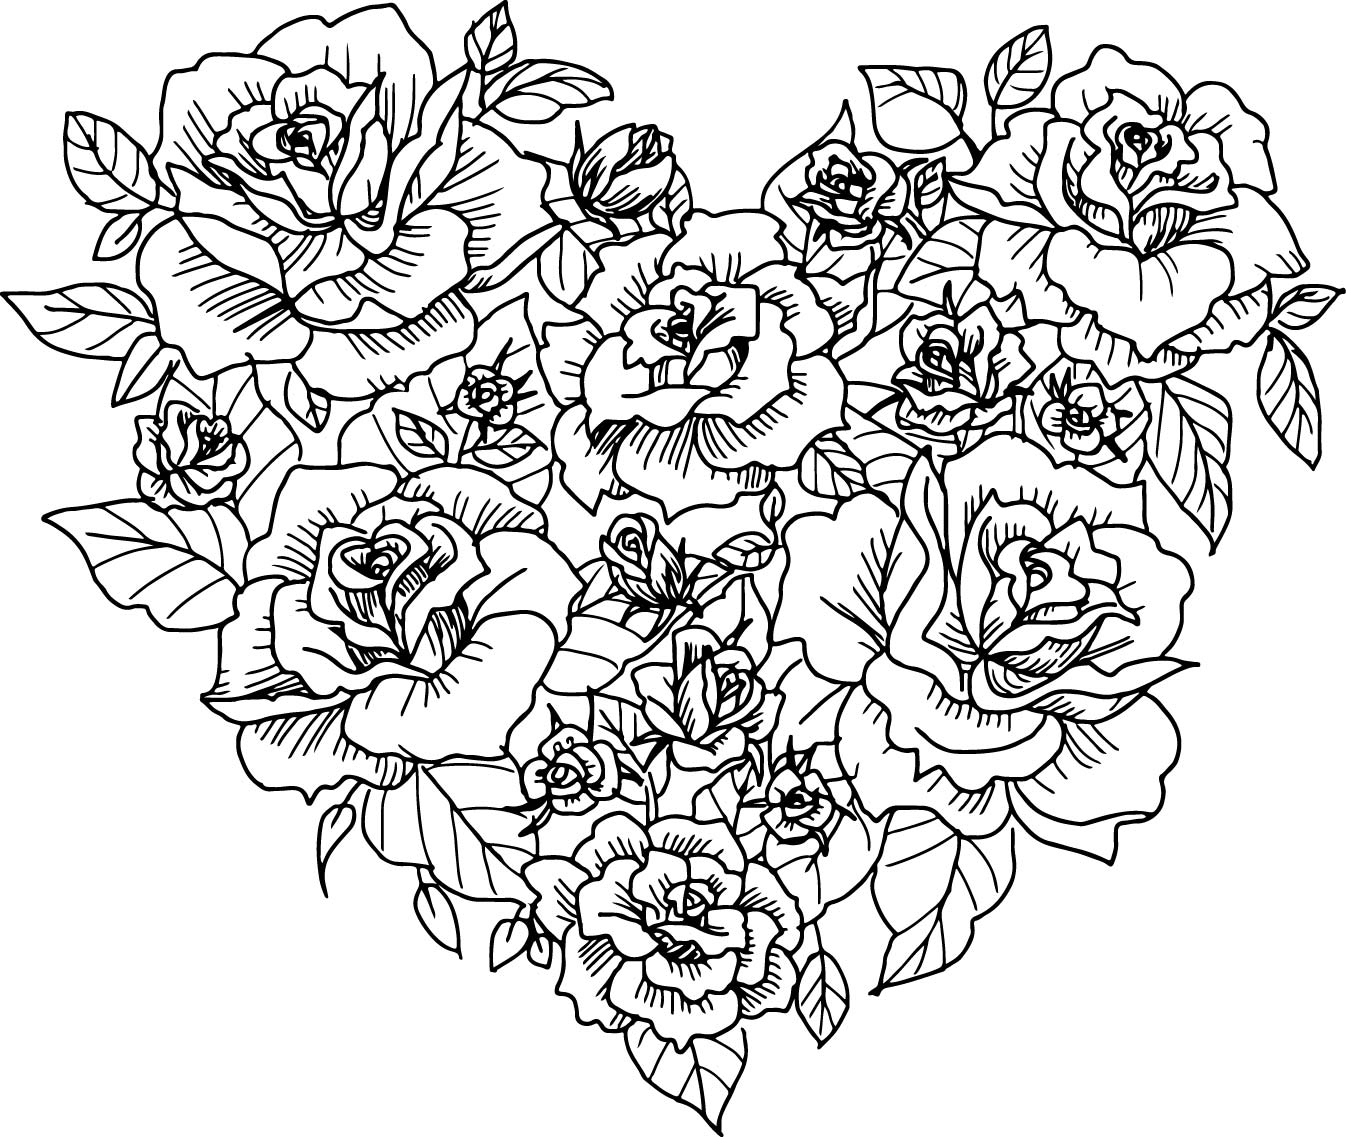 coloring pages of hearts with roses free printable heart coloring pages for kids coloring hearts pages roses with of